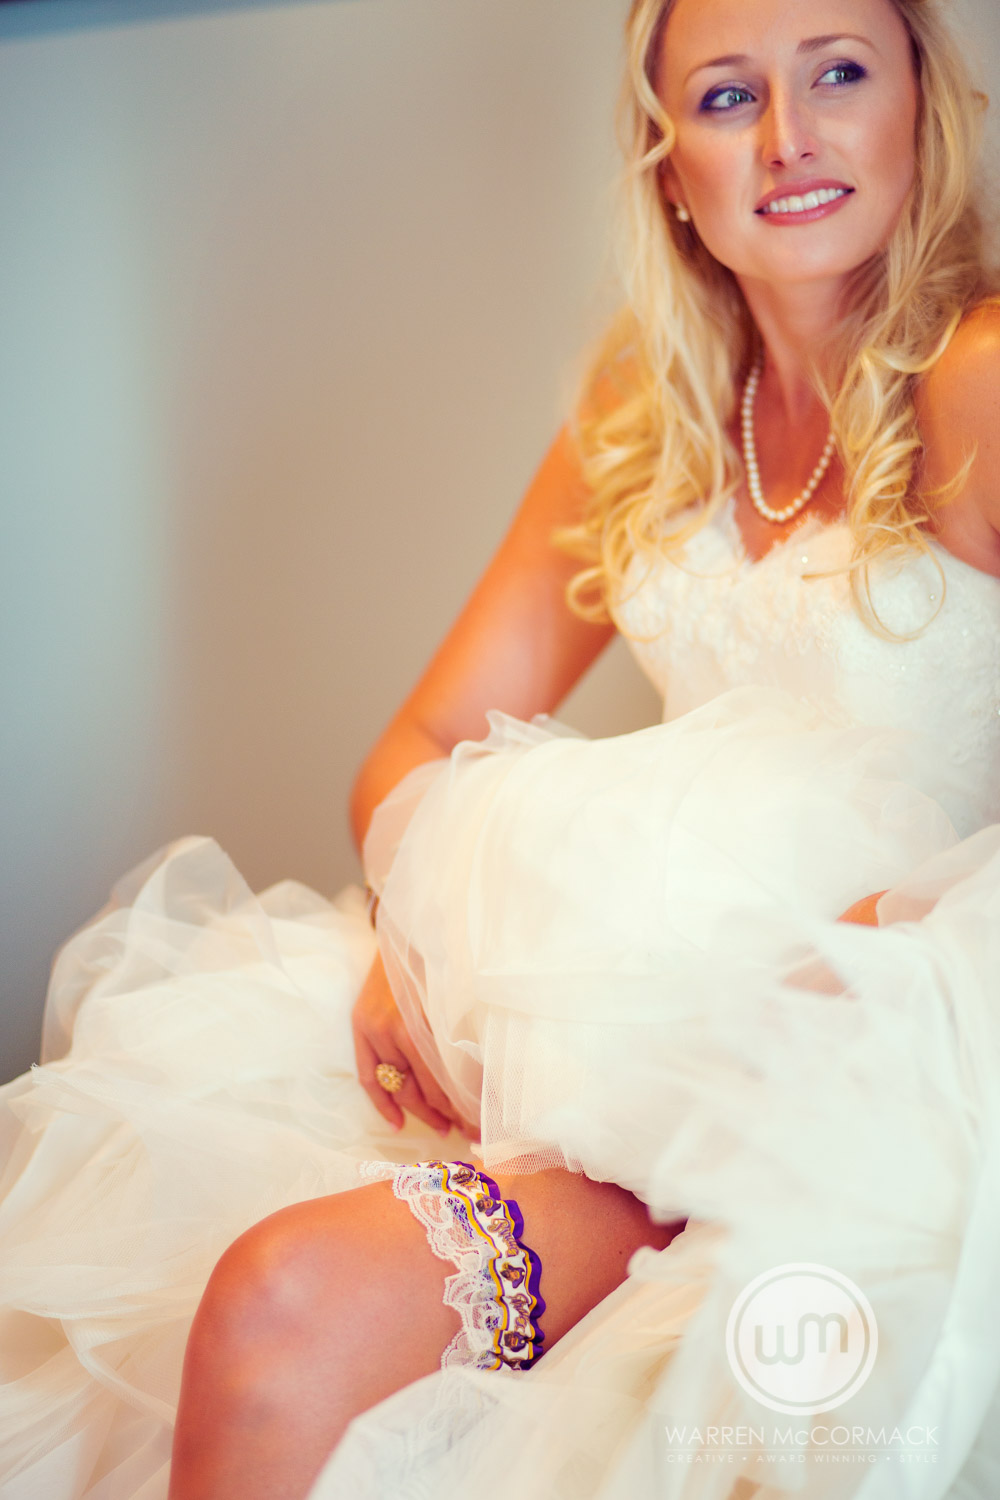 raleigh_bridal_photographer_0002.jpg